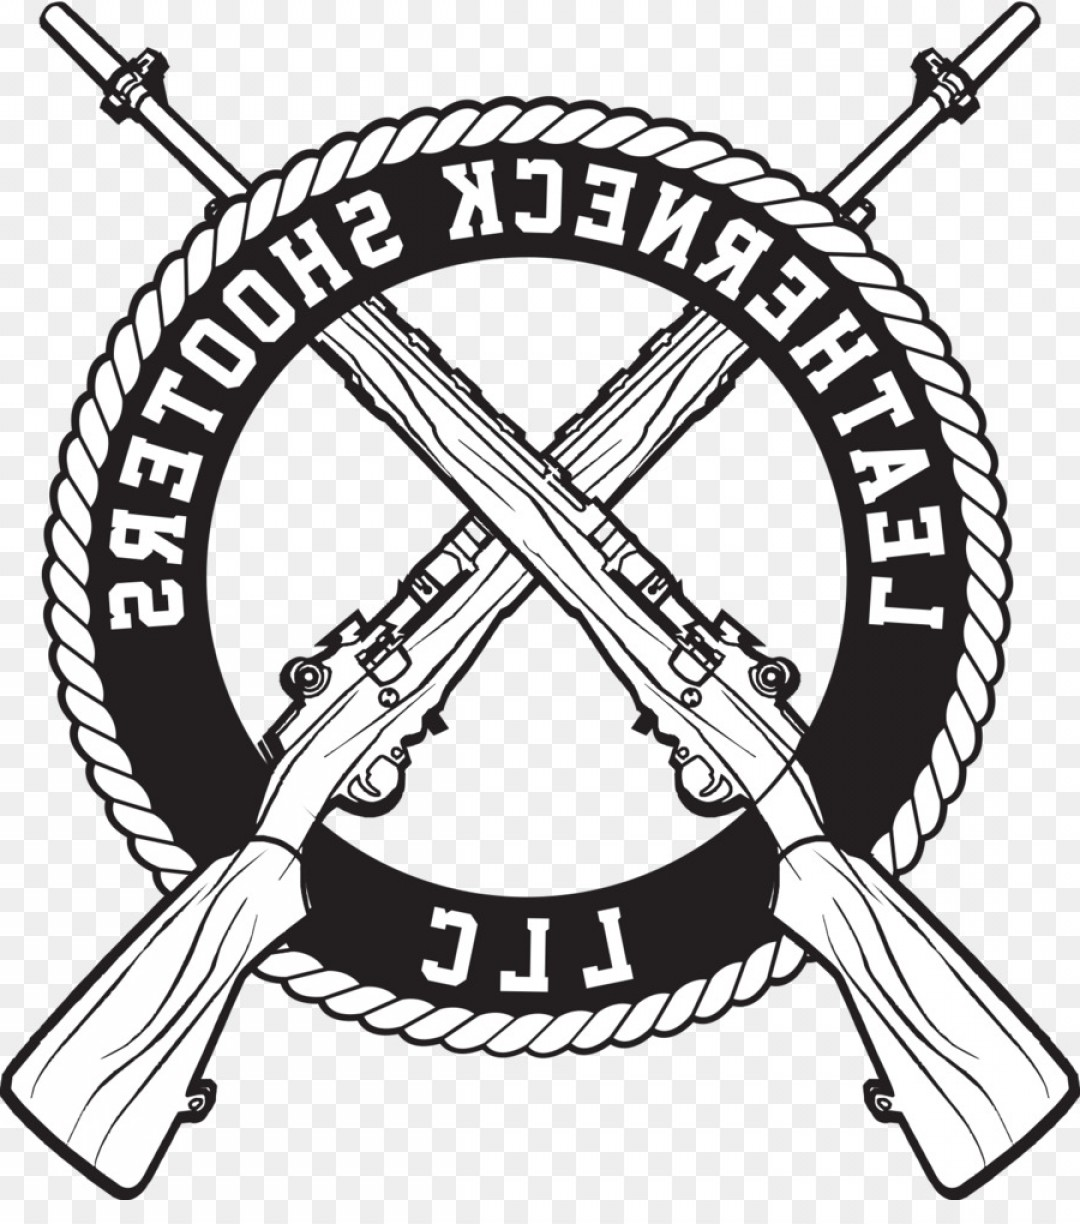 Png Wounded Warrior Project Charitable Organization Ve.